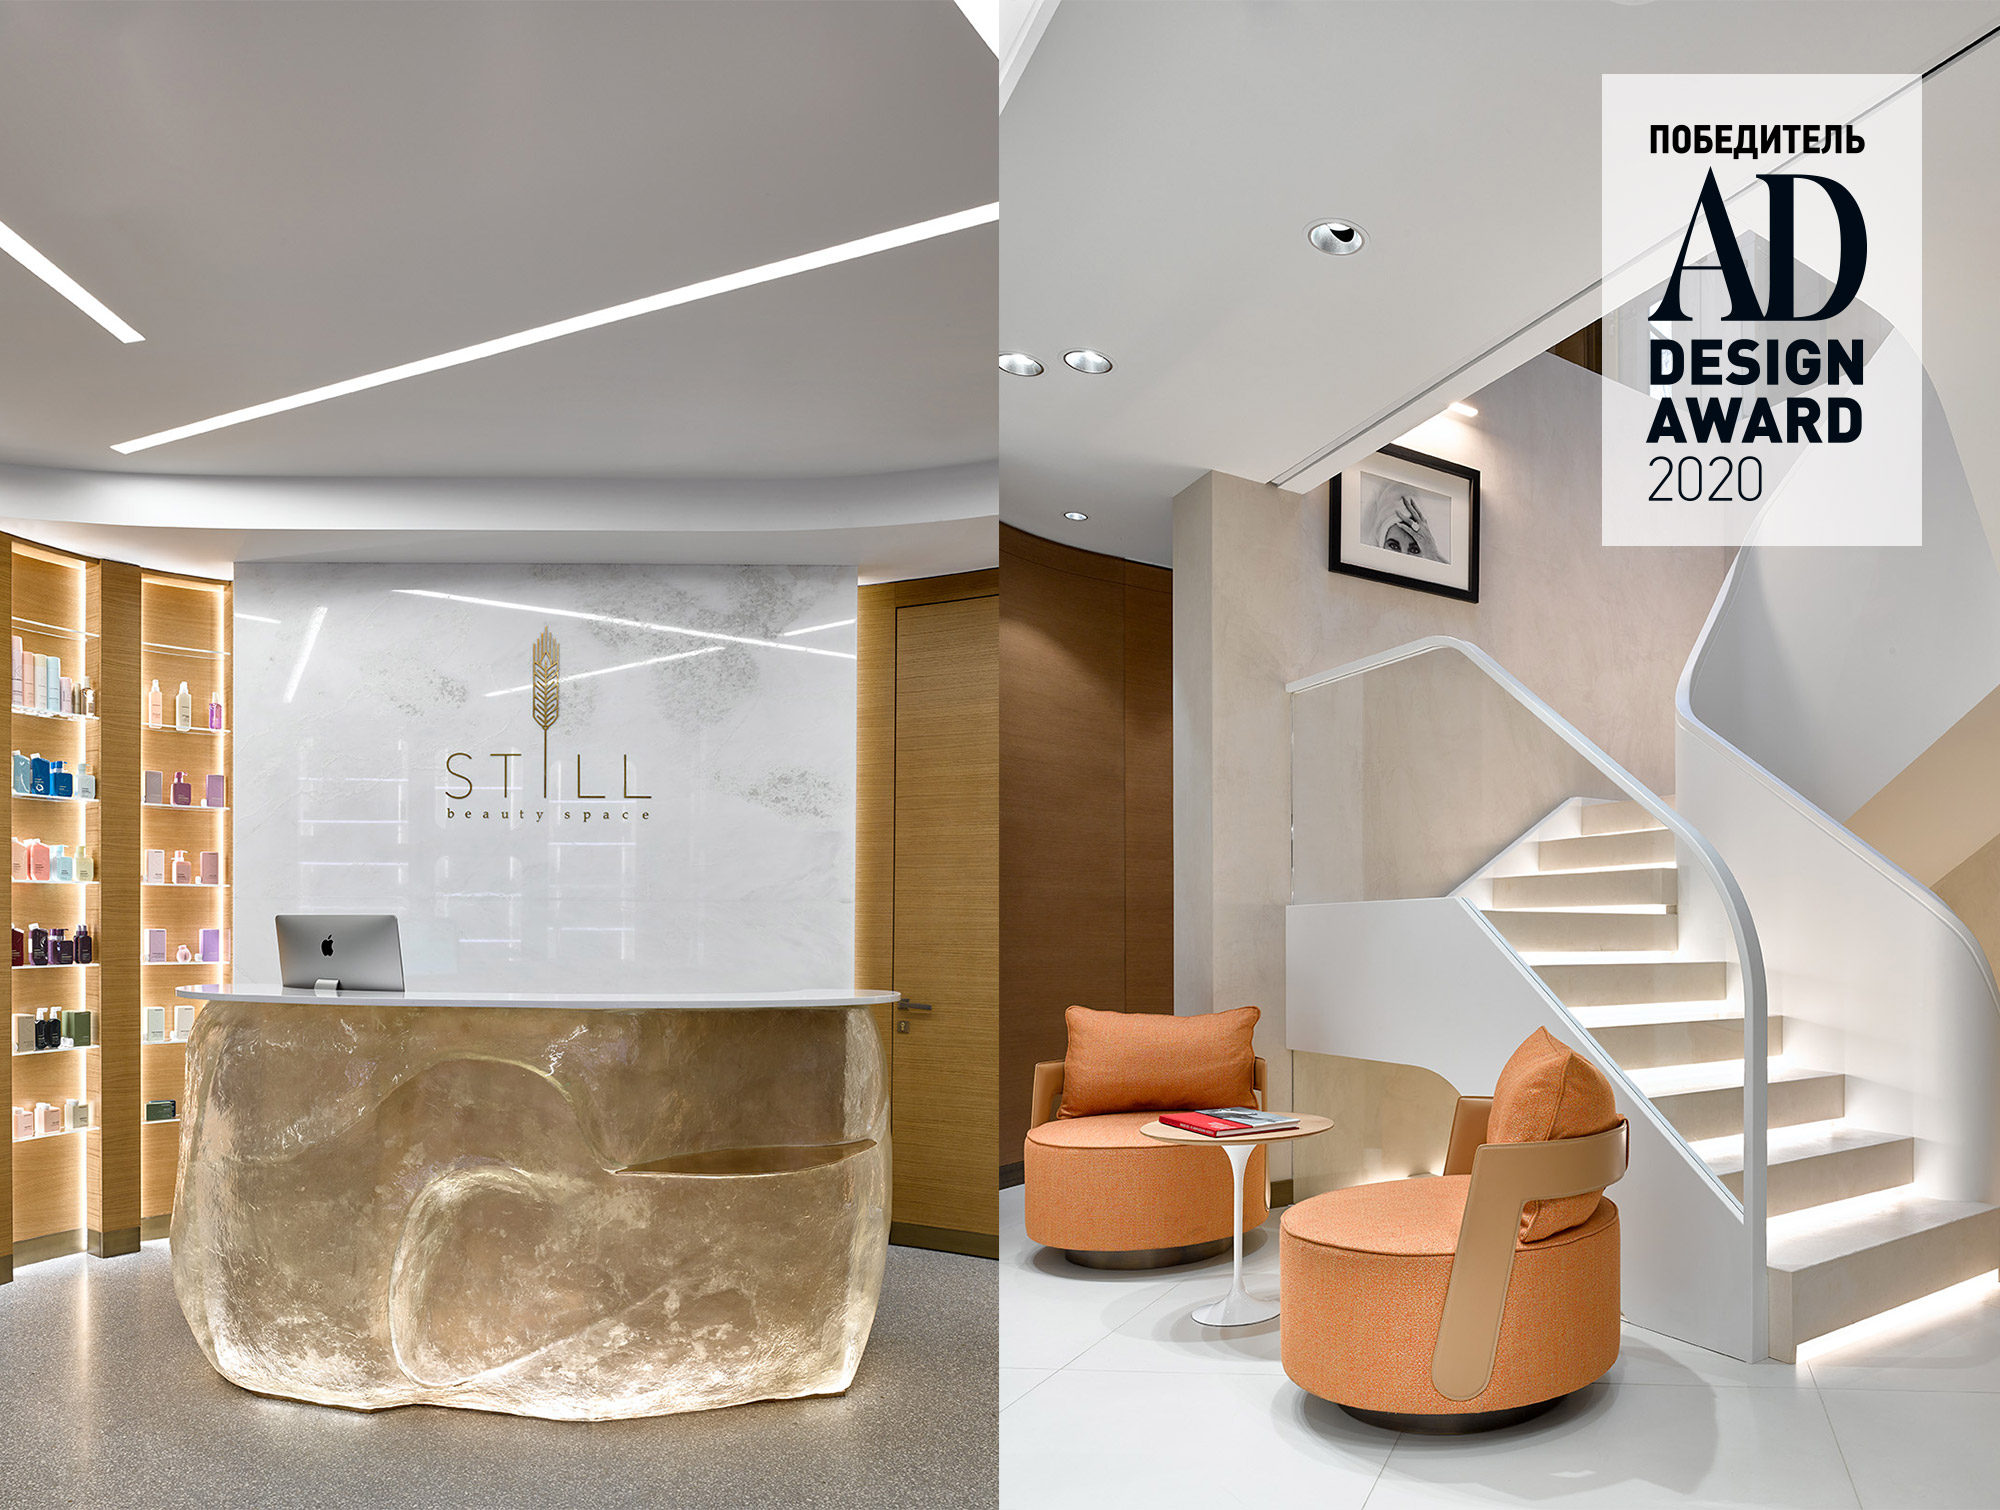 Победитель AD Design Award 2020: салон Still Beauty Space по проекту Ирины Глик